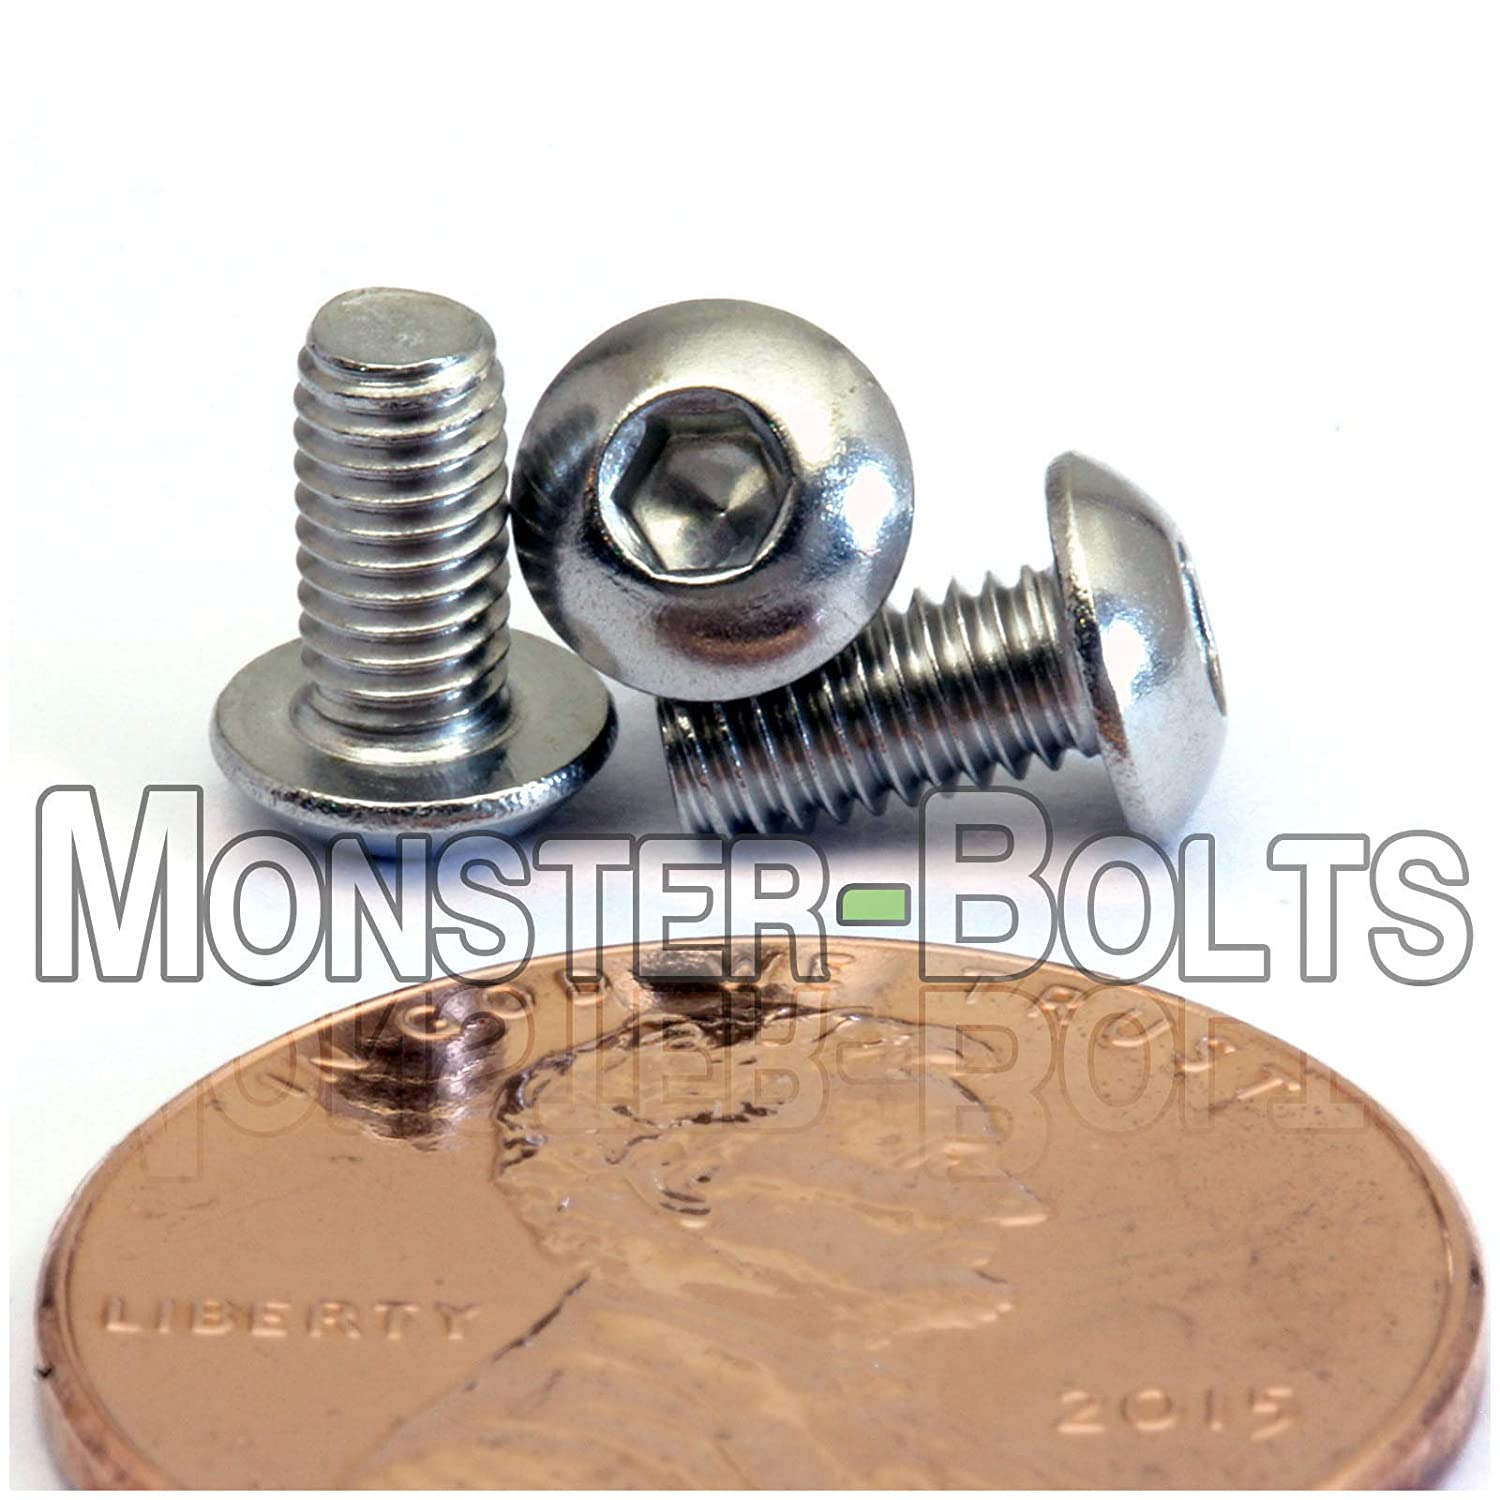 3mm x 0.50 x 6mm Qty 20 A2 Stainless Steel BUTTON HEAD Screws ISO 7380 M3